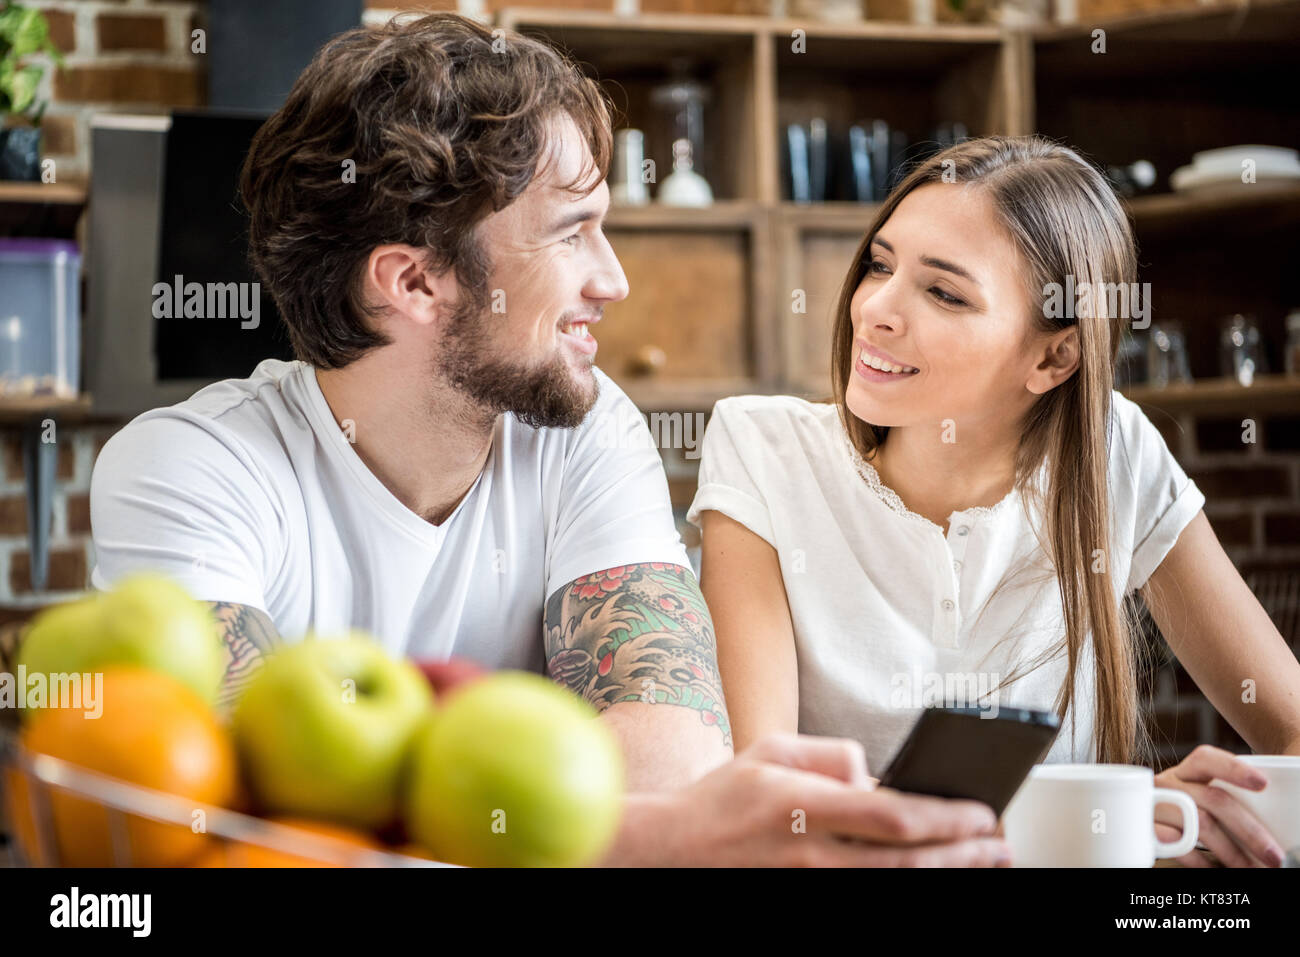 Couple using smartphone Photo Stock